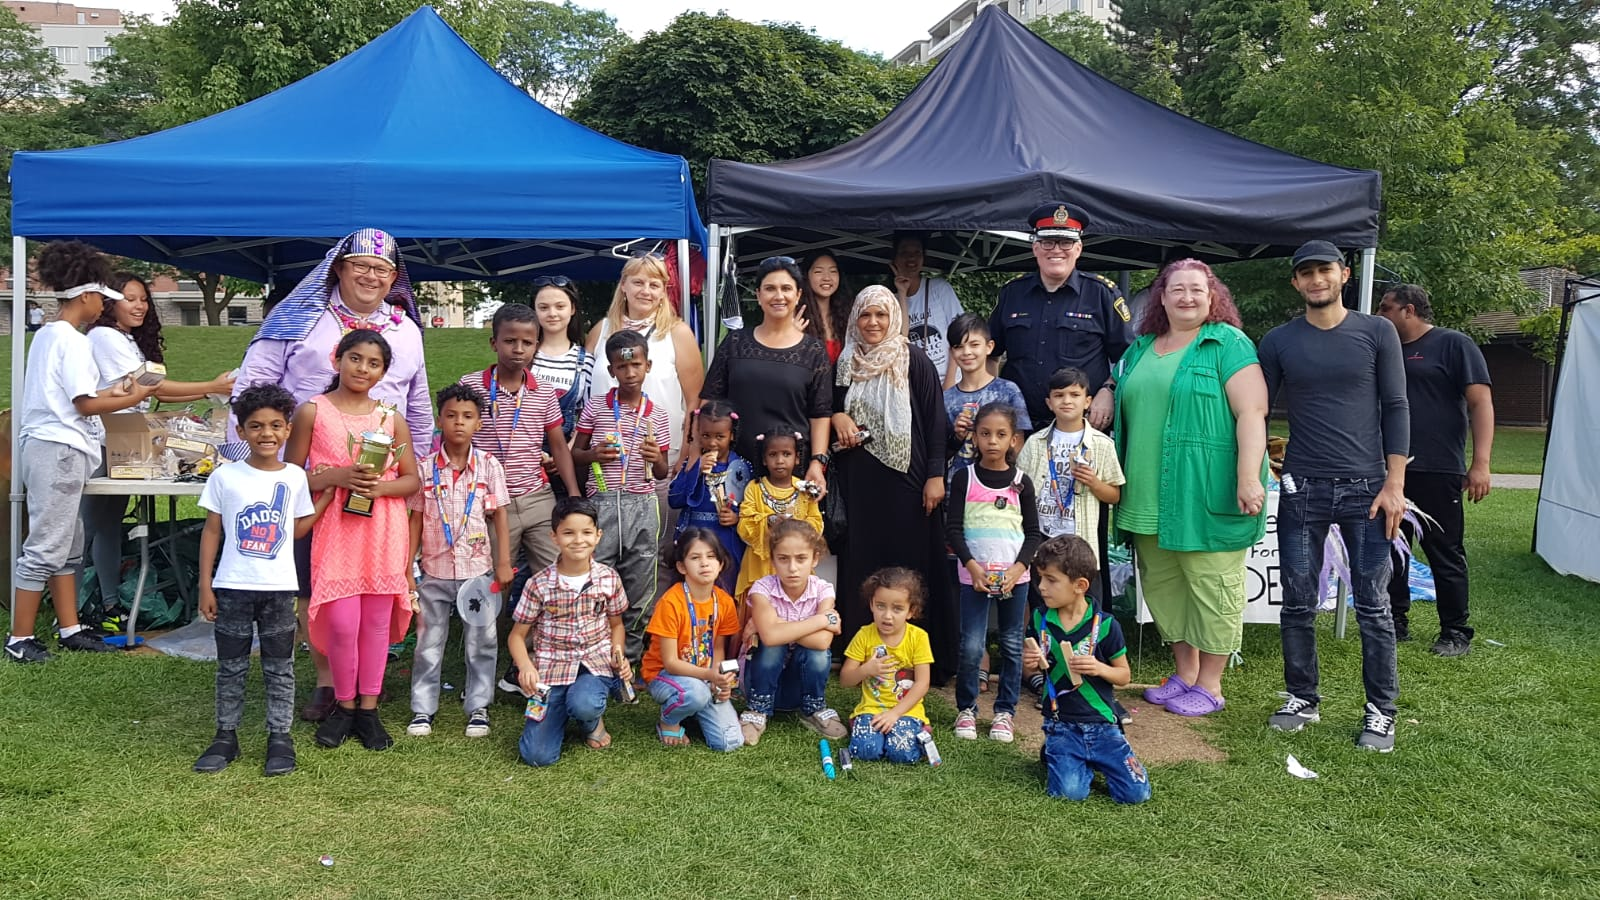 Focus On Fun! - Focus for Ethnic Women under their program Focus on New Beginnings, took residents of Reception House to enjoy the Link Picnic at Victoria park. This was a new experience for the newcomers and their first exposure to a picnic in the park in Canada!